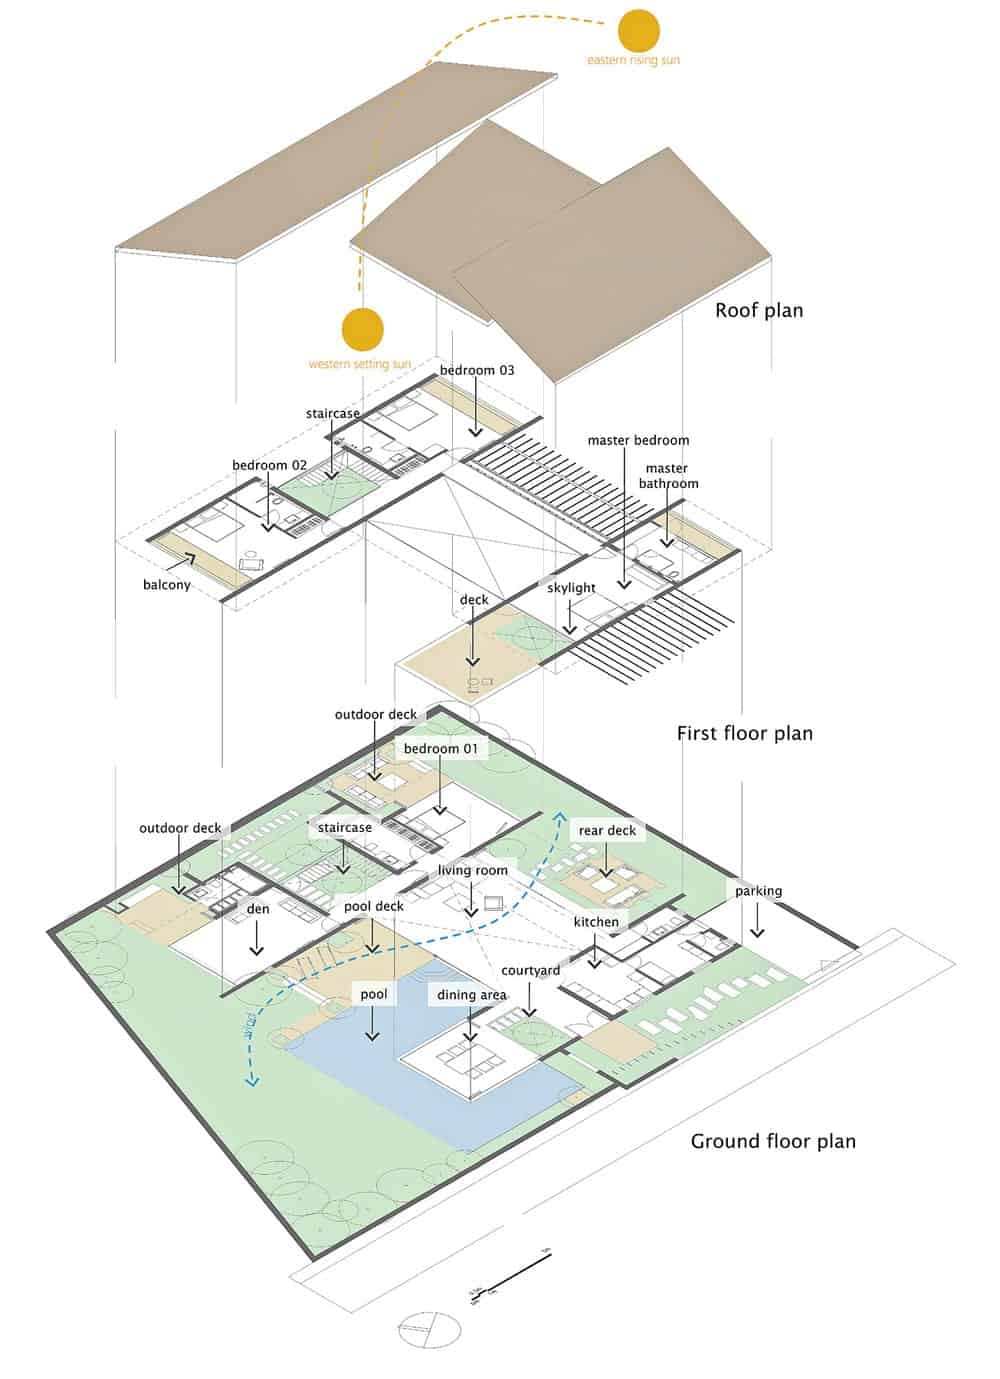 Floor and roof plans of the Monsoon Retreat designed by Abraham John Architects.